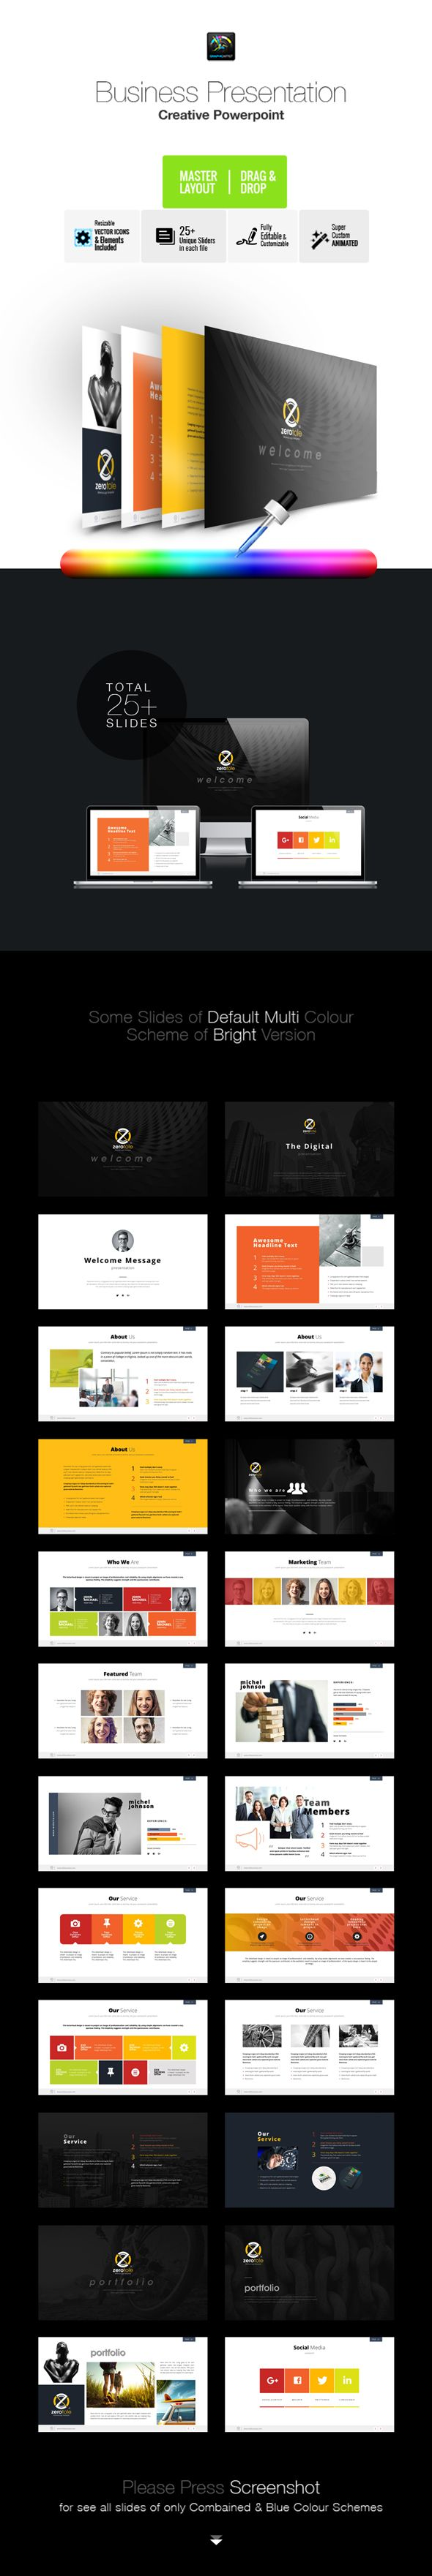 Corporate Business Powerpoint  Powerpoint Templates Presentation